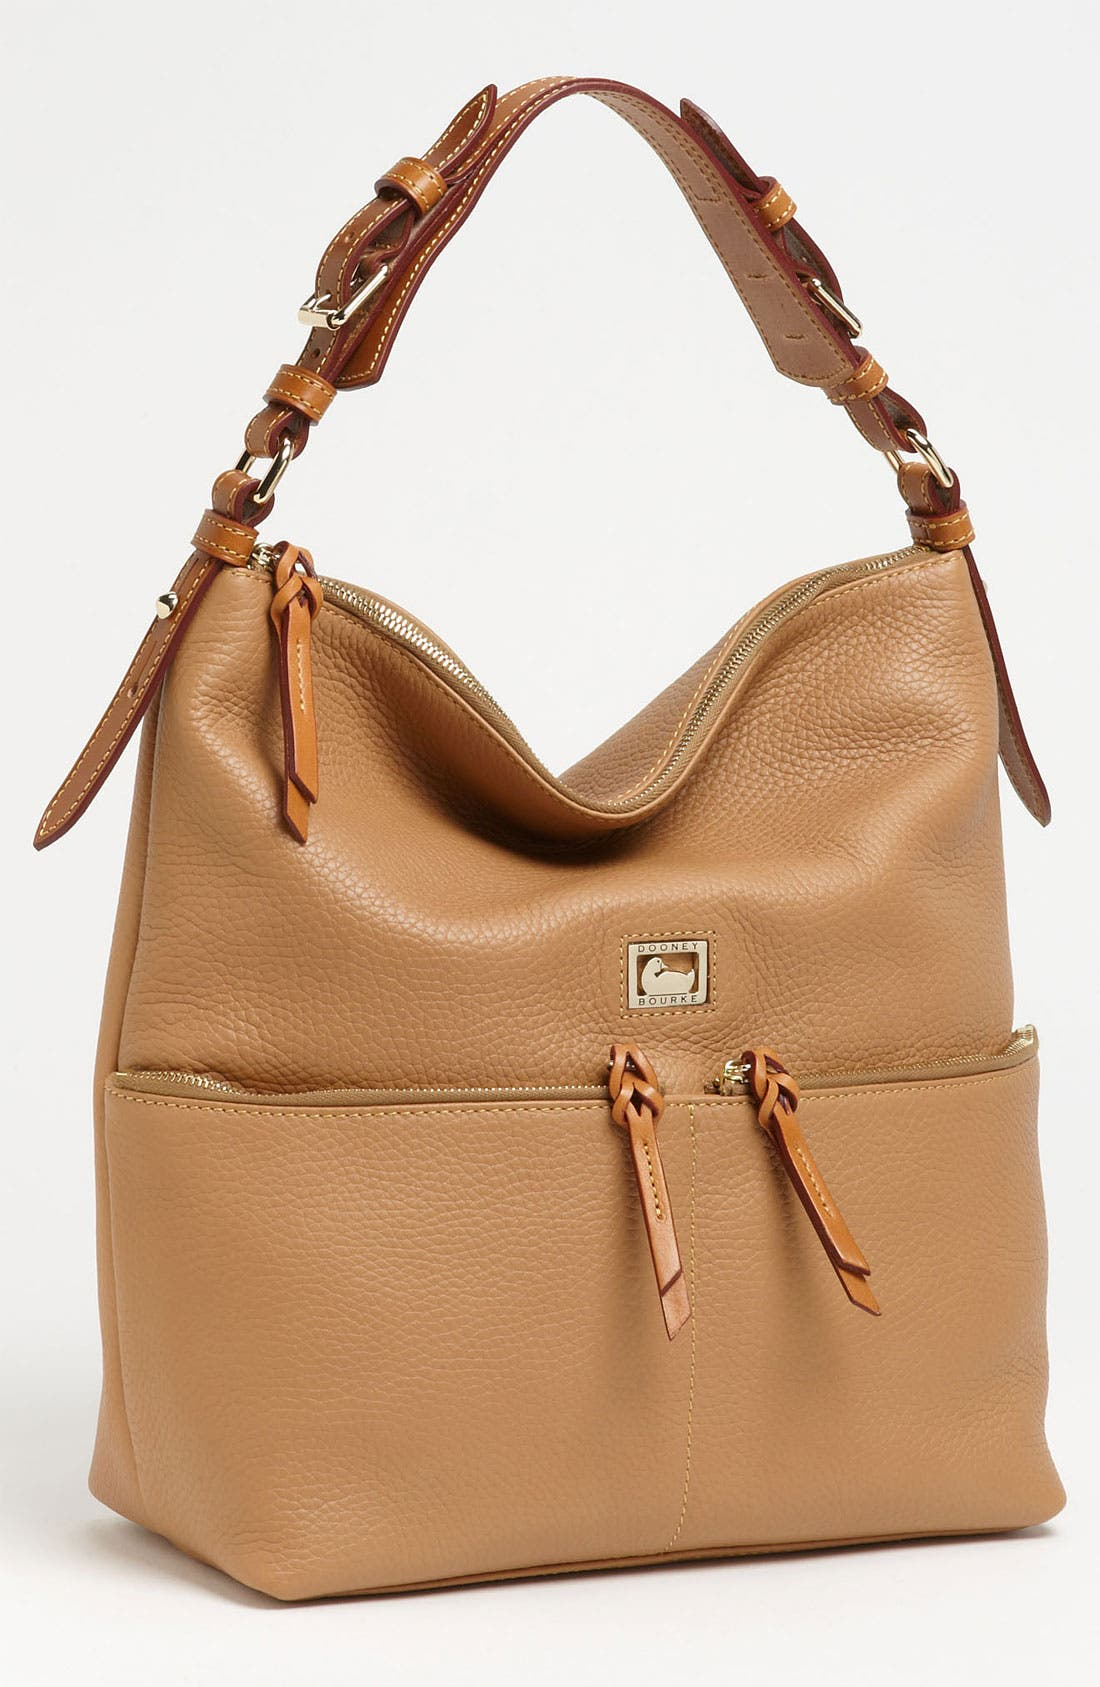 Main Image - Dooney & Bourke 'Dillen - Medium' Zip Pocket Leather Hobo